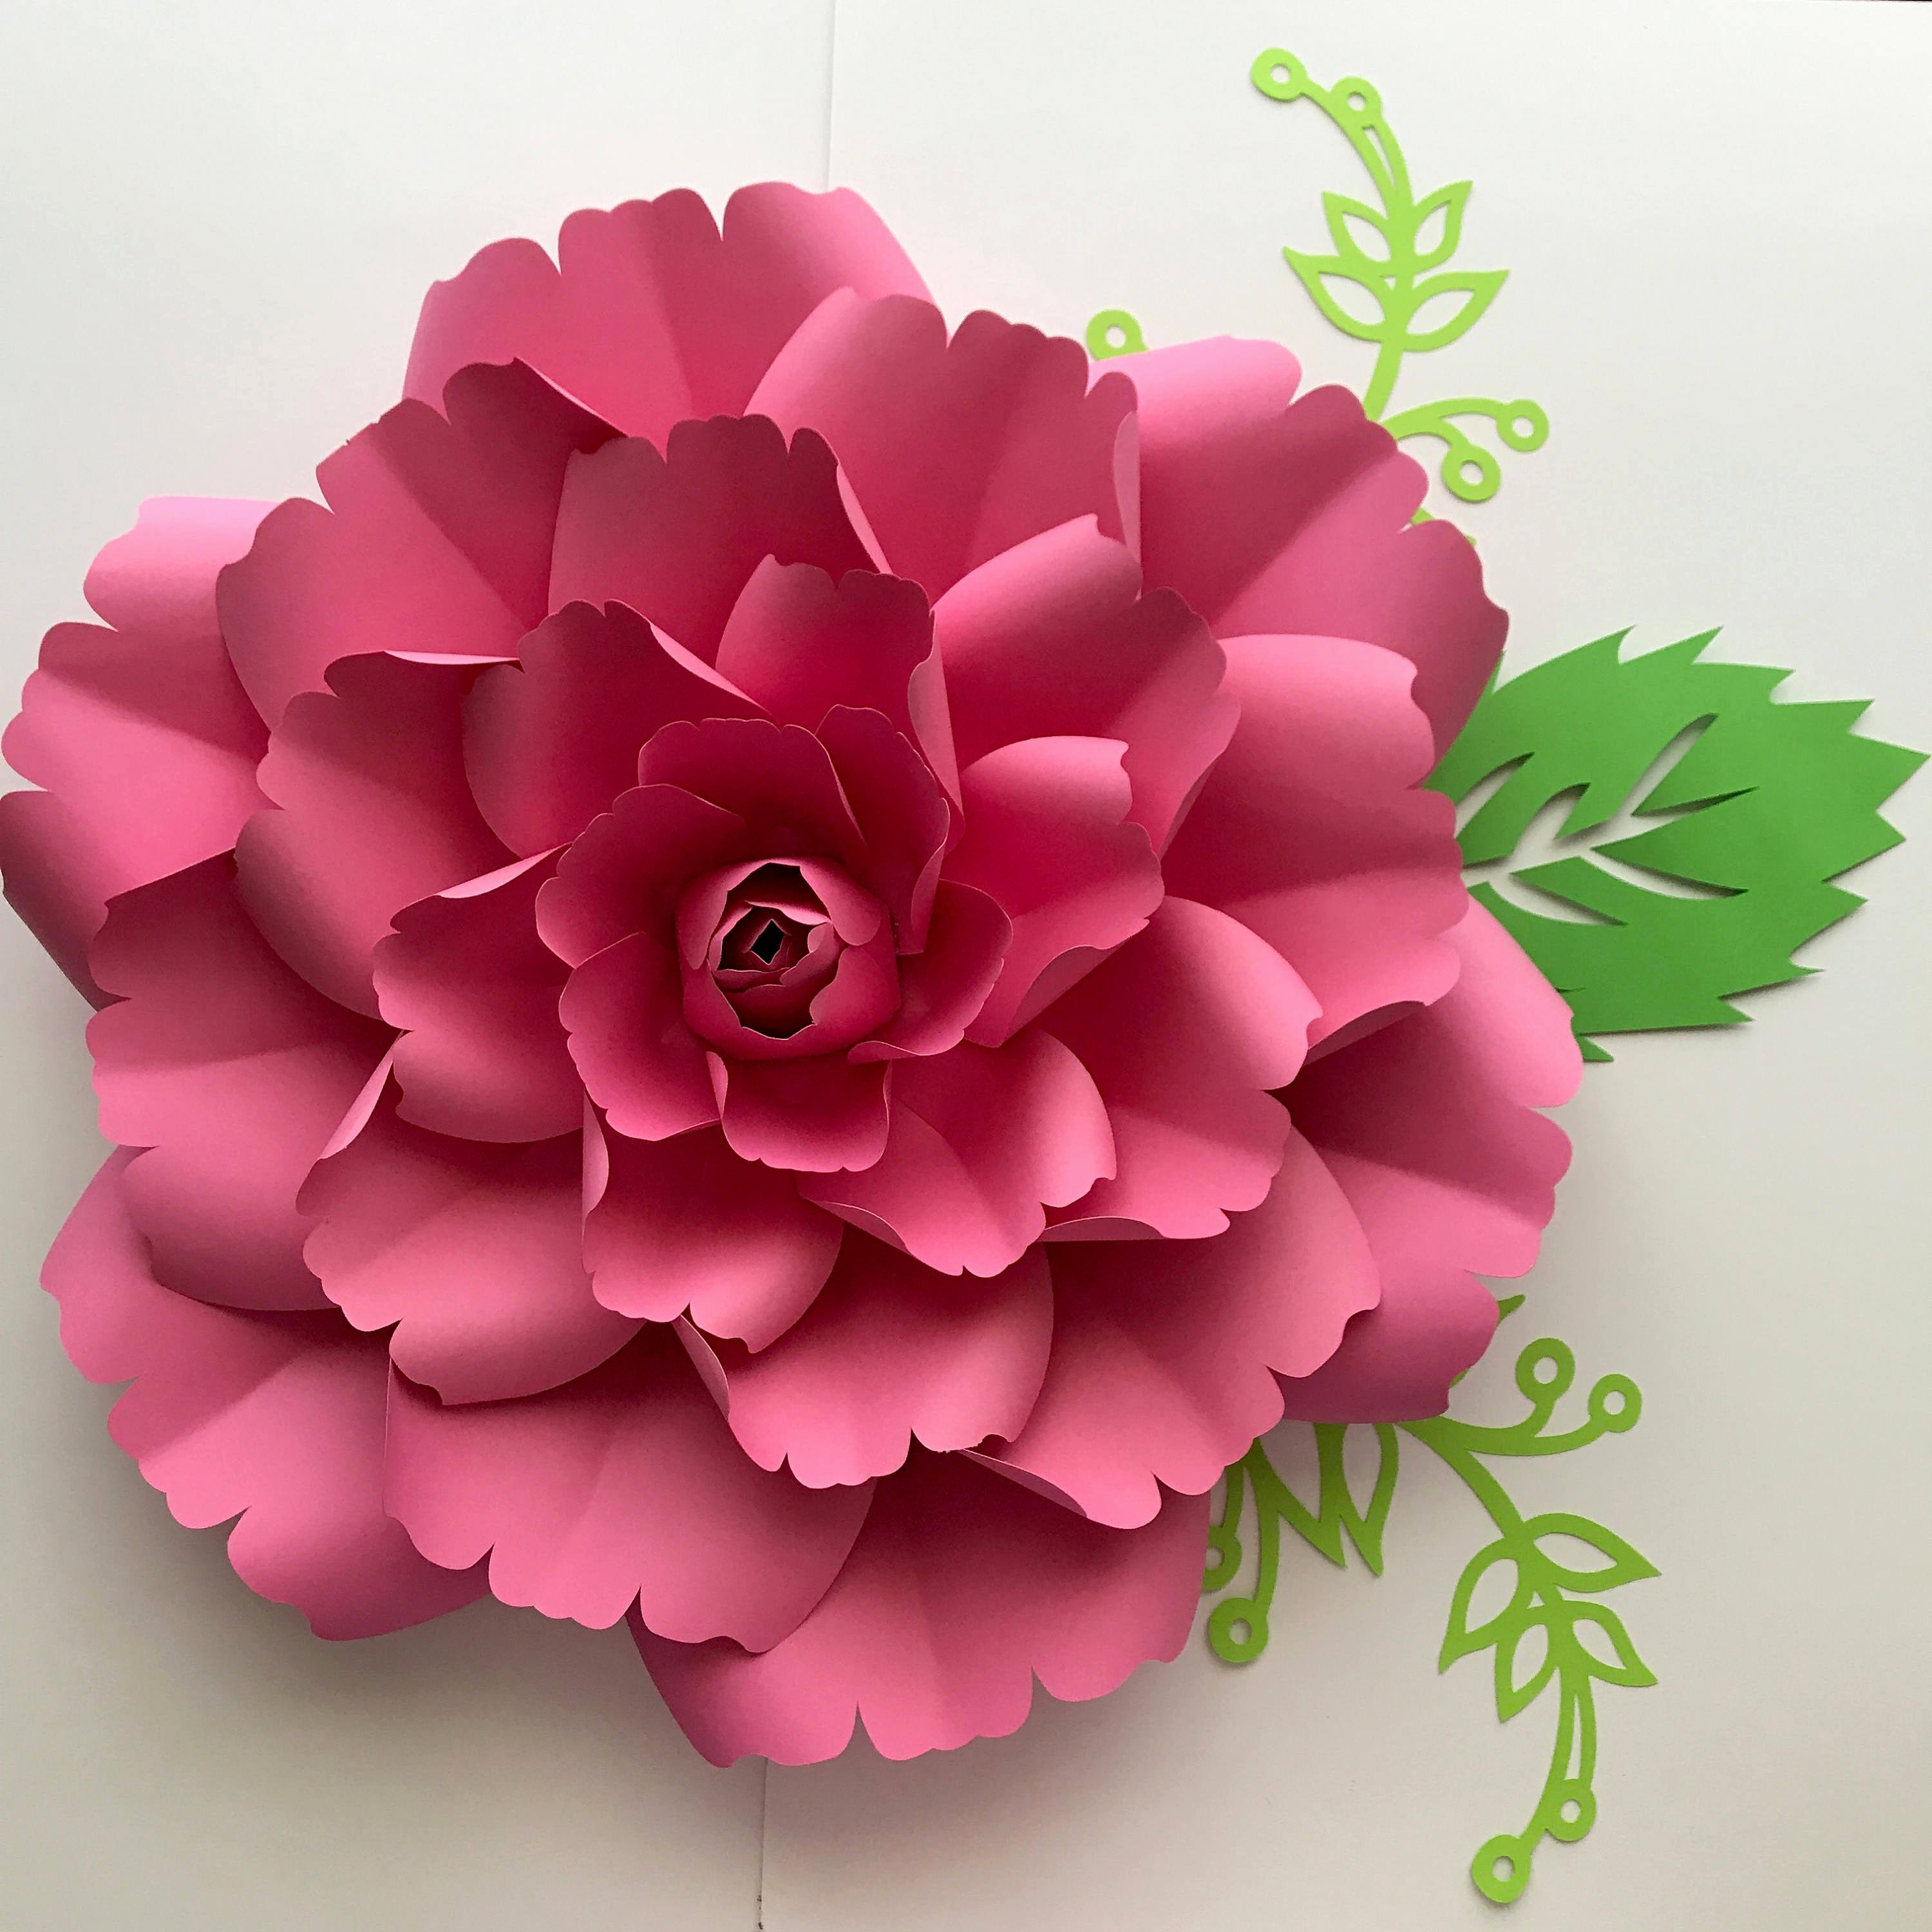 Templates for Paper Flowers Best Of Pdf Paper Flower Template with Center Digital Version